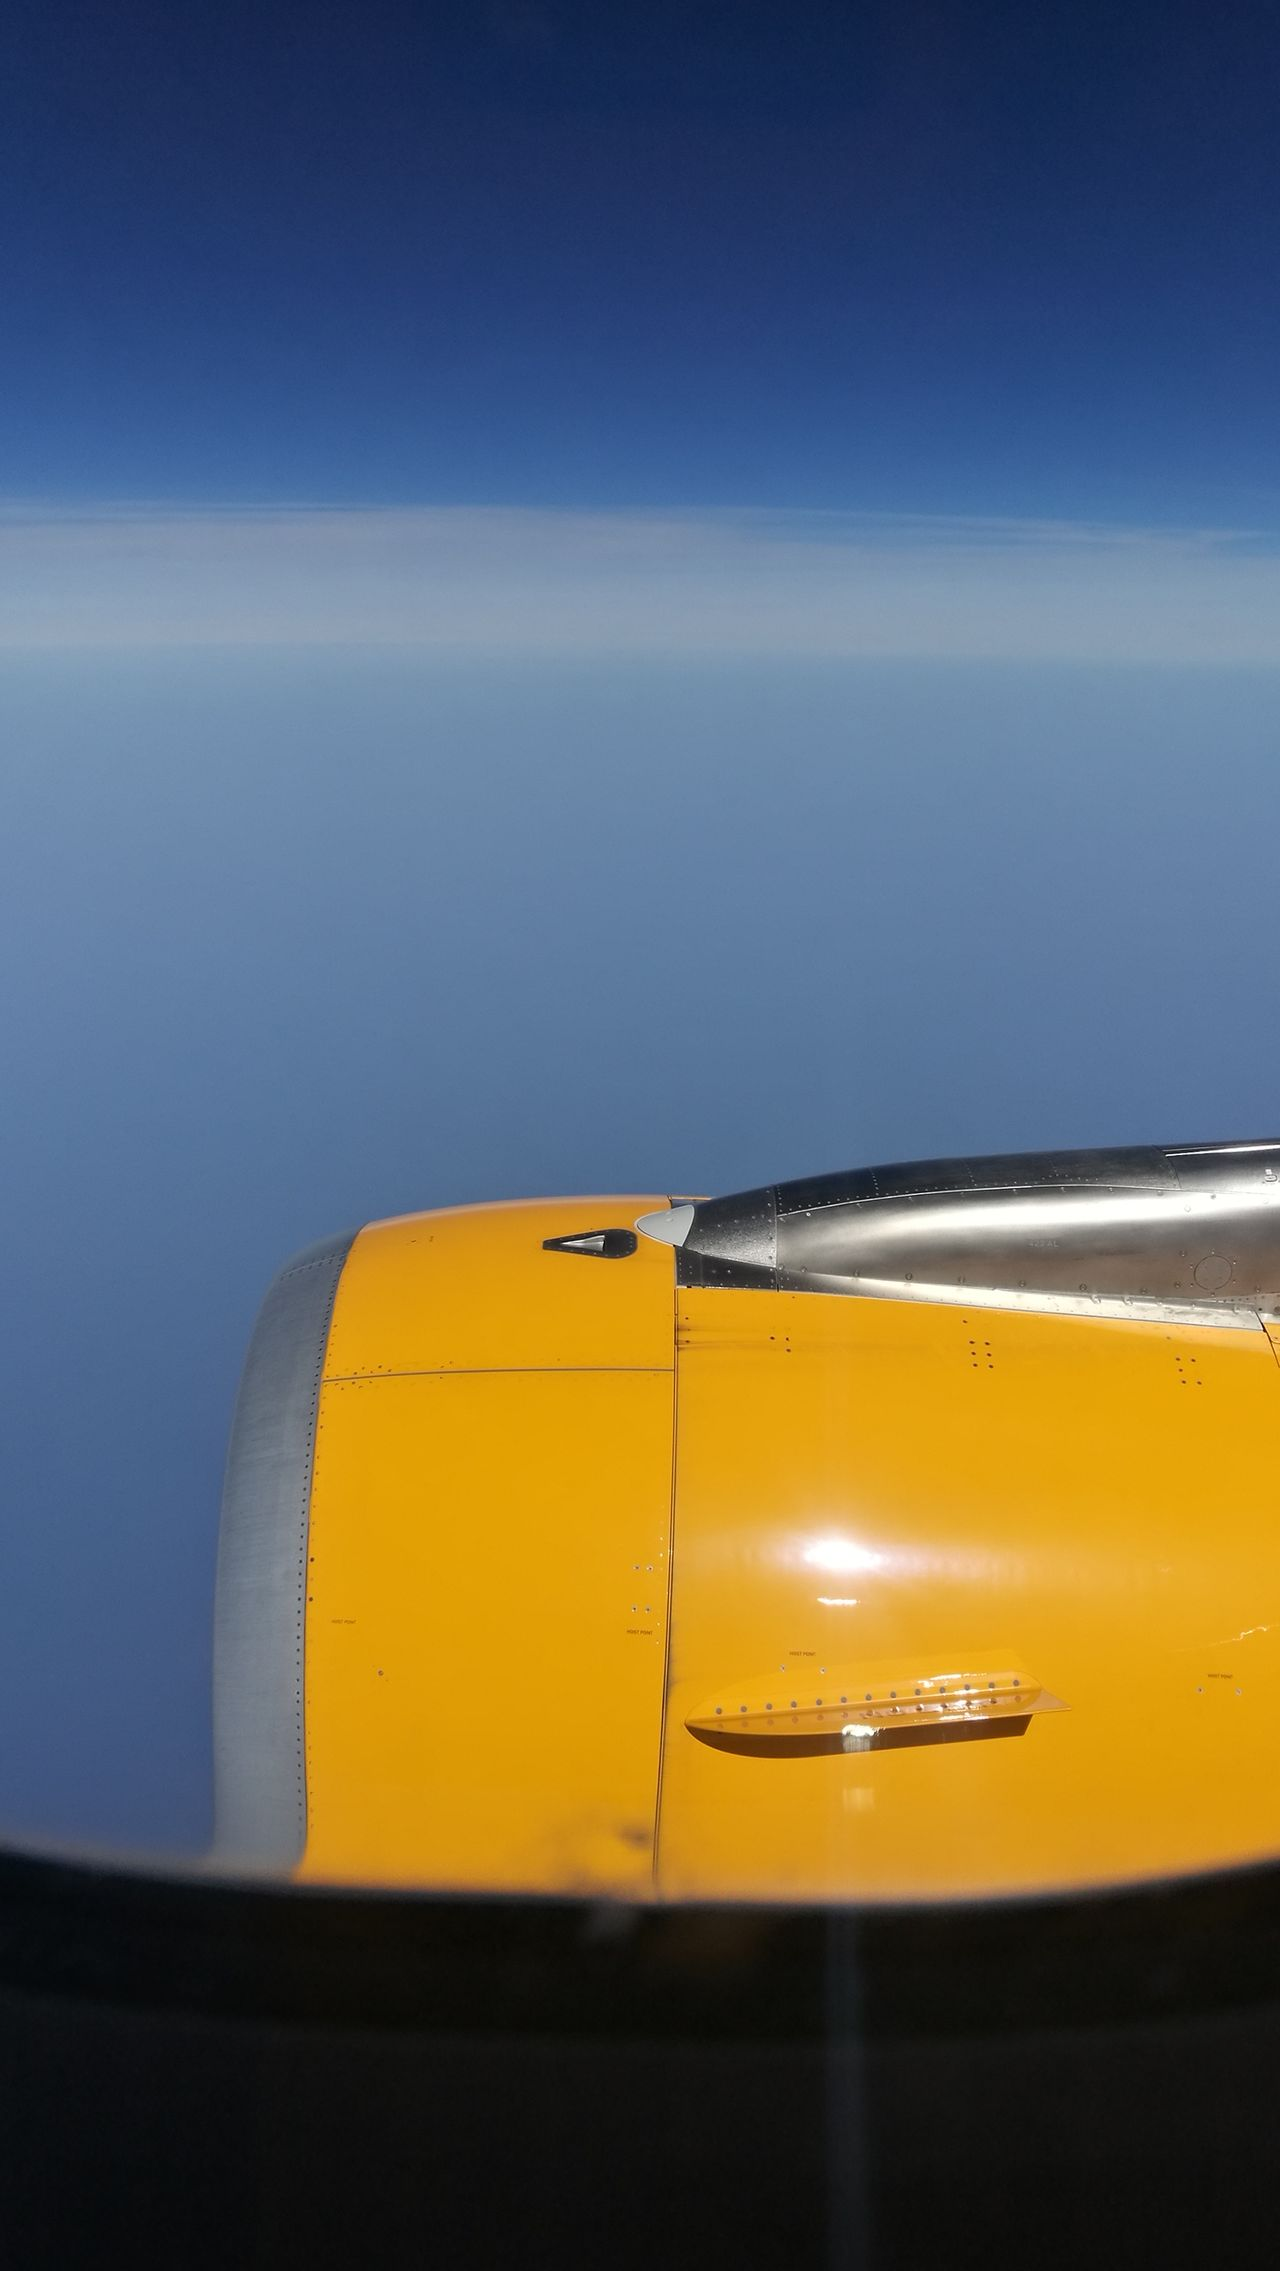 Yellow No People Sea Water Sky Plane Wing Engine Air Travel Holiday Vacation Window Outdoors Trip Sun Horizon Blue Cloud